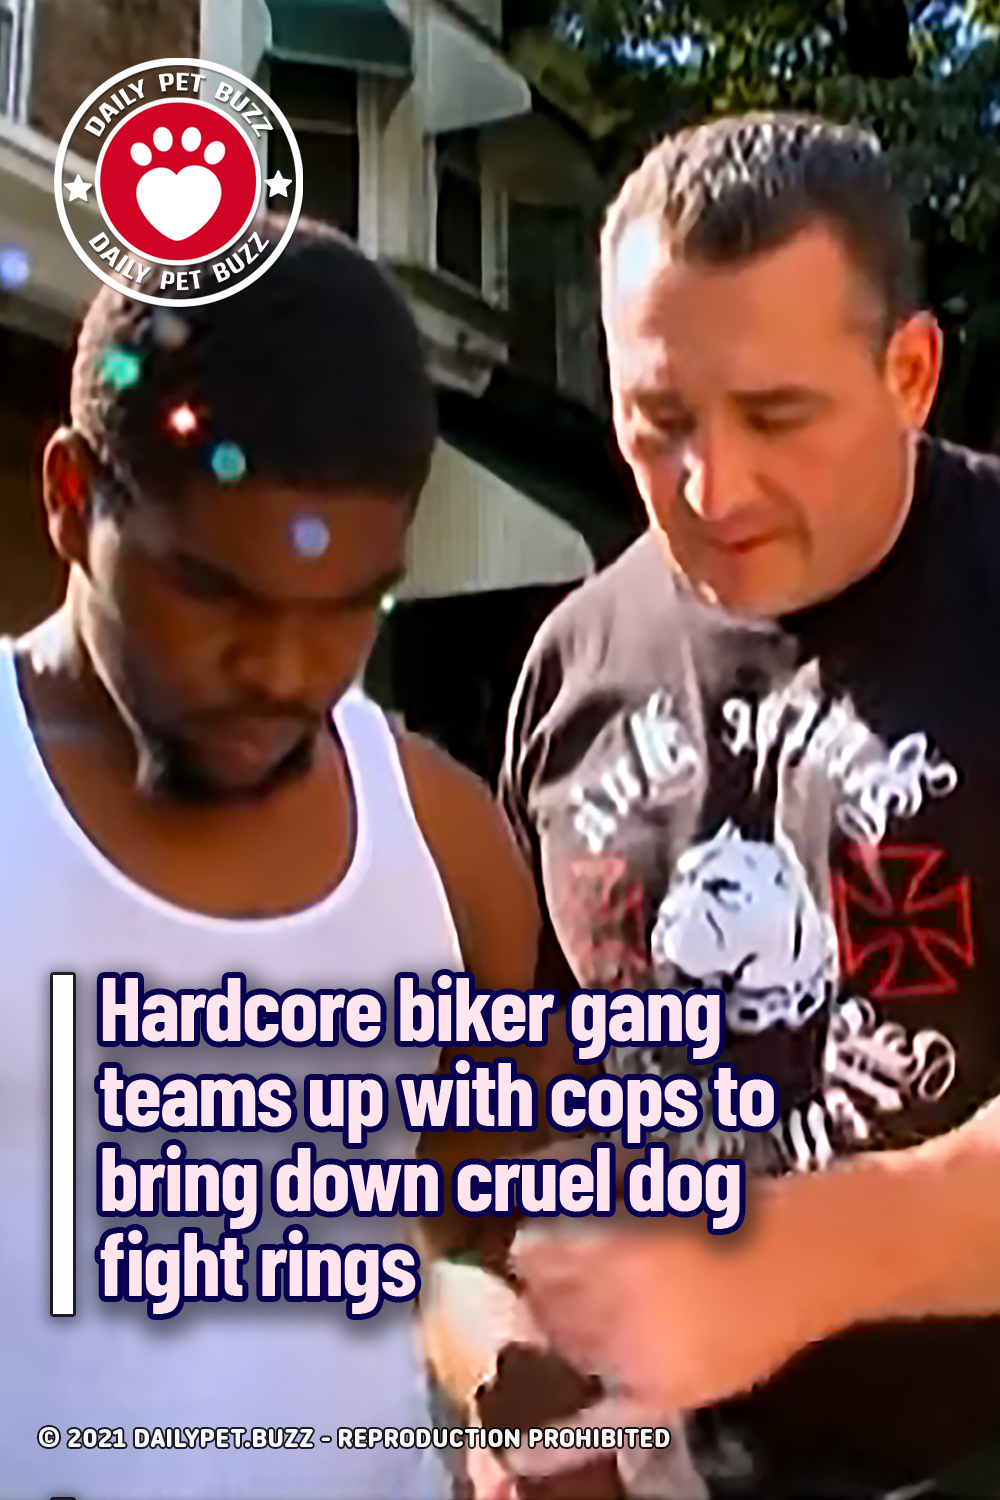 Hardcore biker gang teams up with cops to bring down cruel dog fight rings